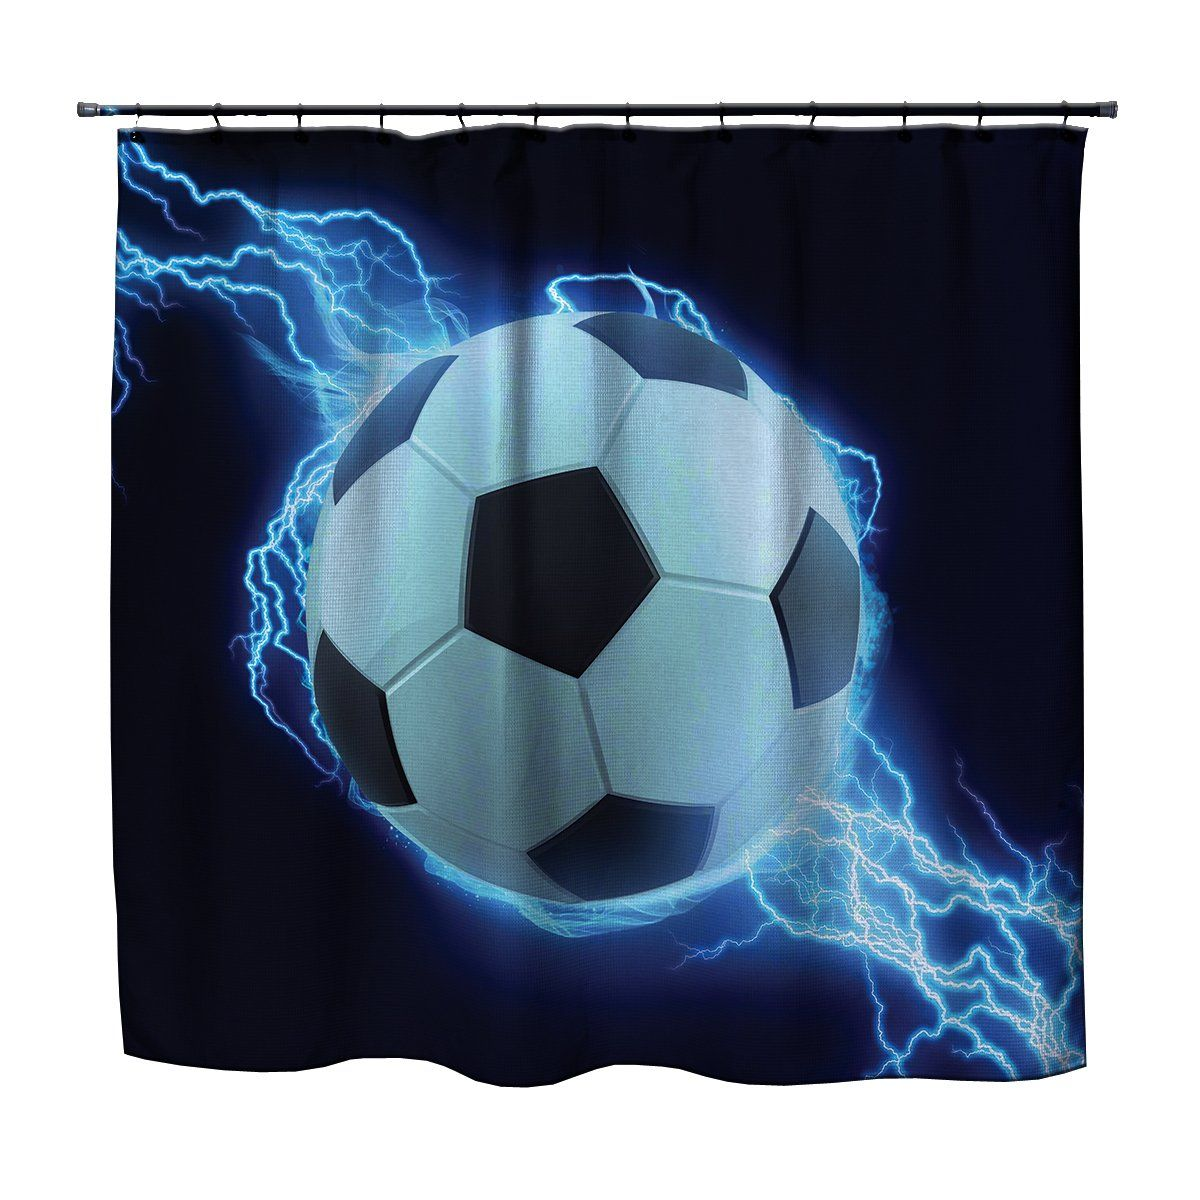 Soccer Shower Curtain Lightning From Kids Bedding Company